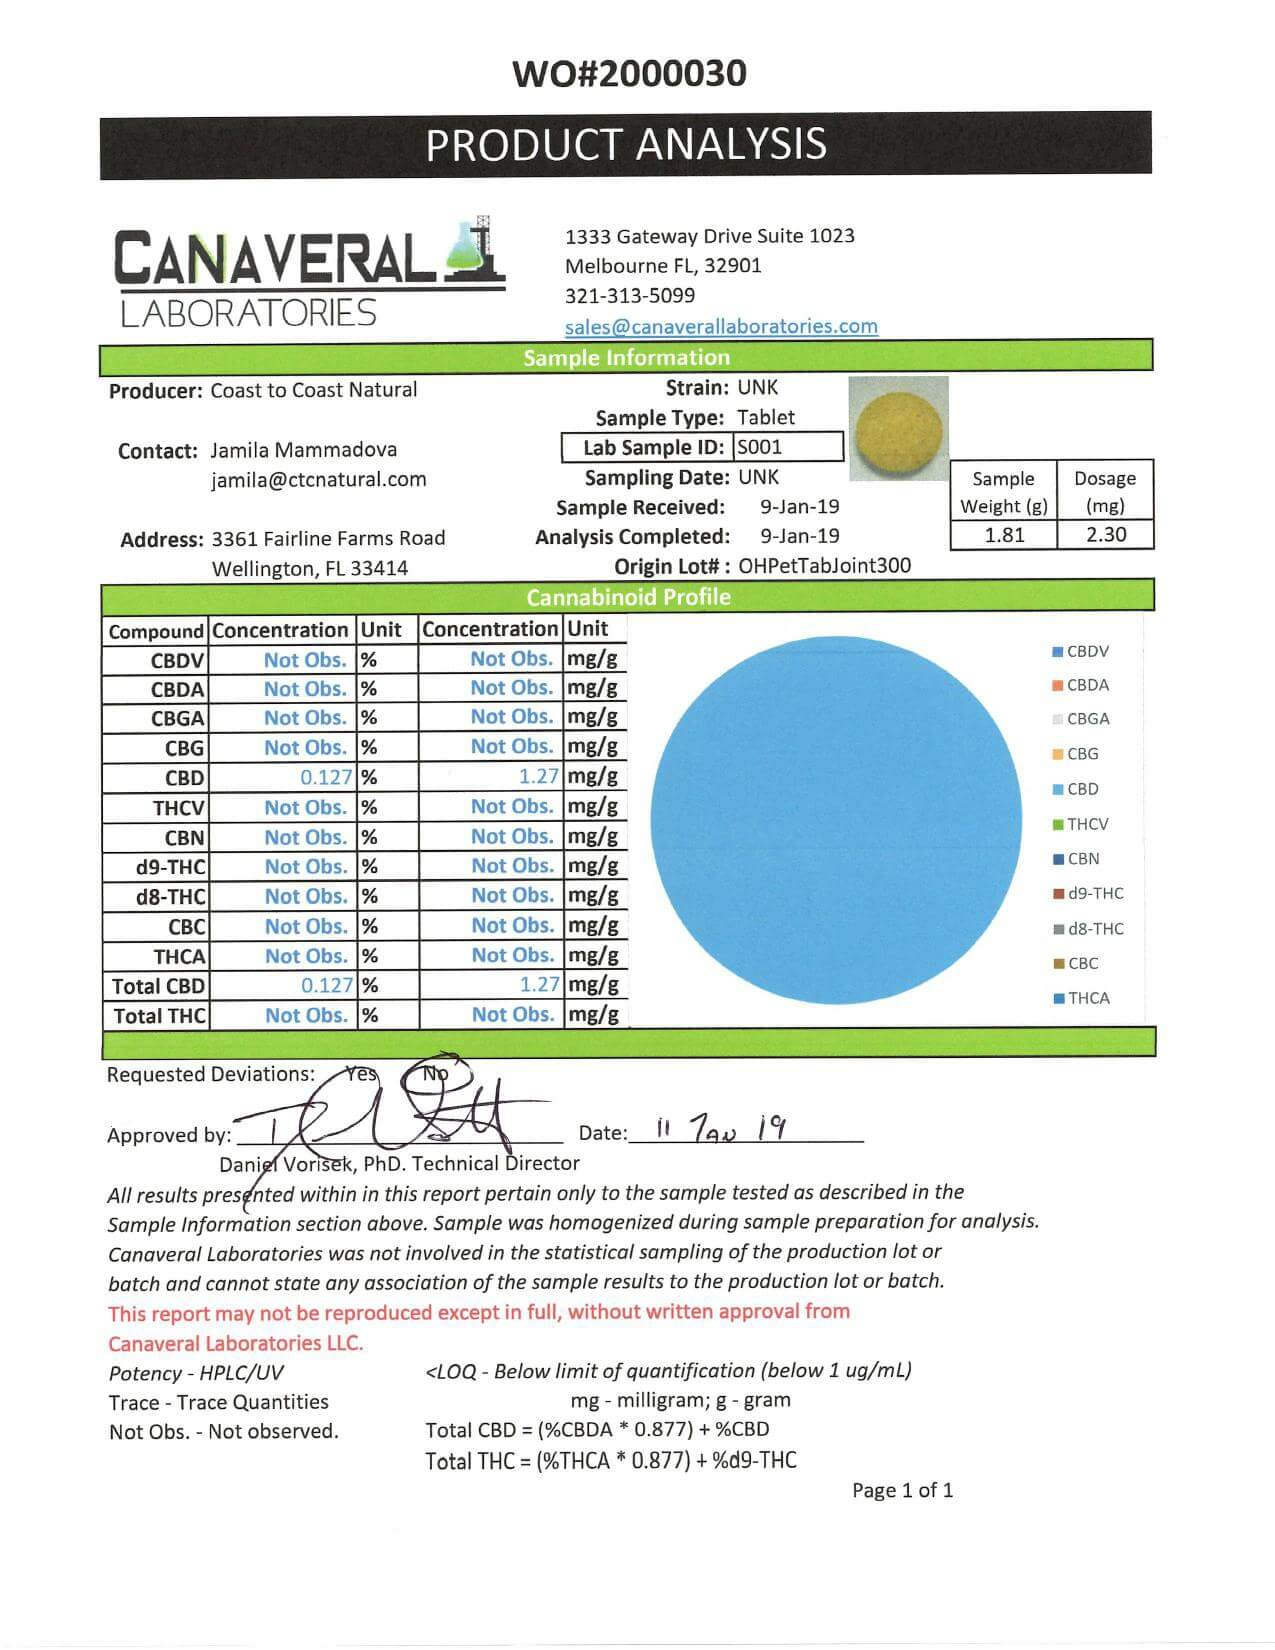 Oliver's Harvest CBD Pet Capsule Joint Support Tablets Lab Report